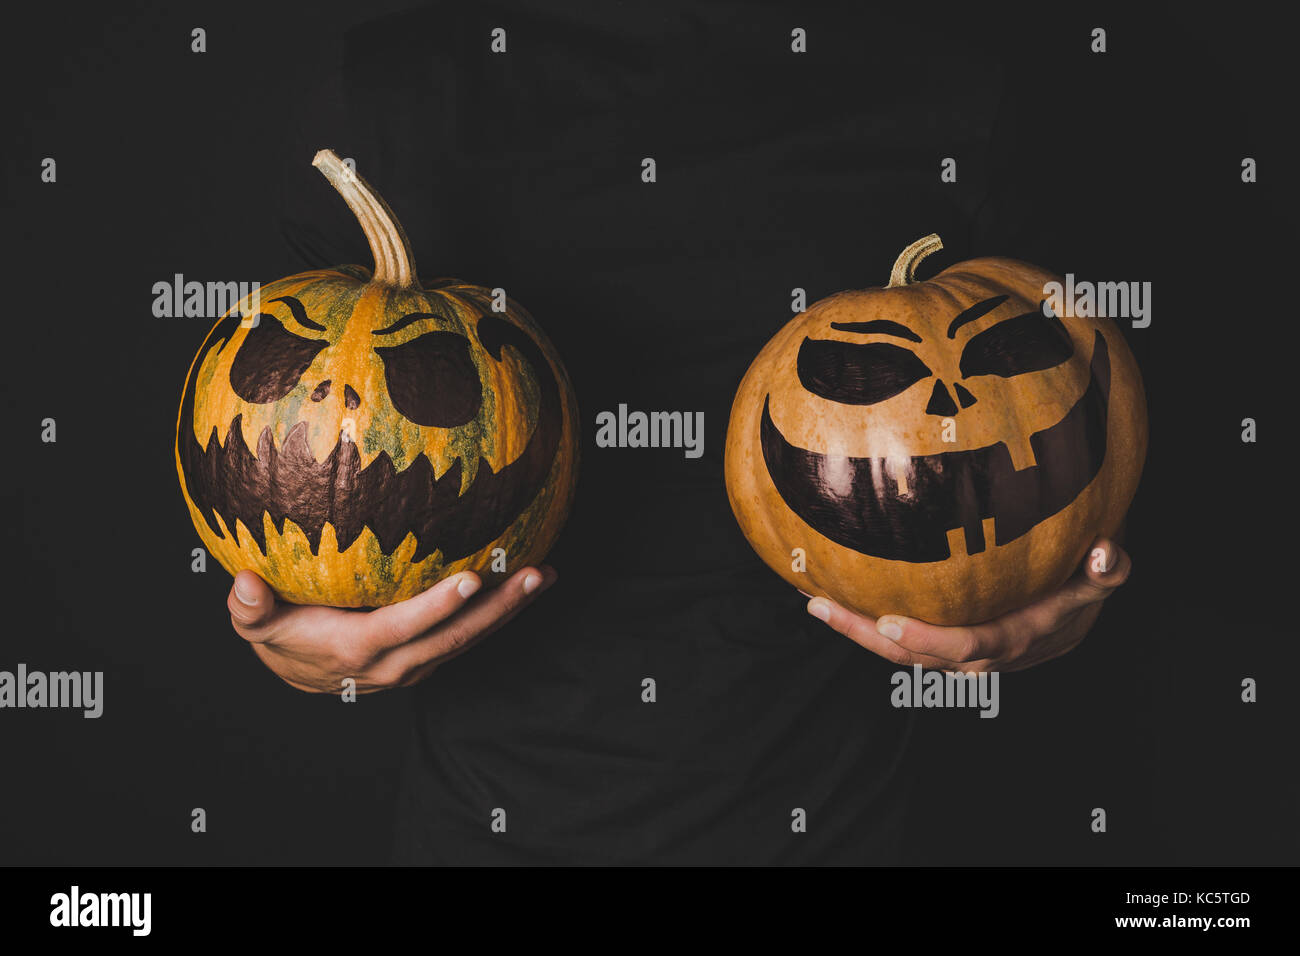 man with pumpkins in hands - Stock Image